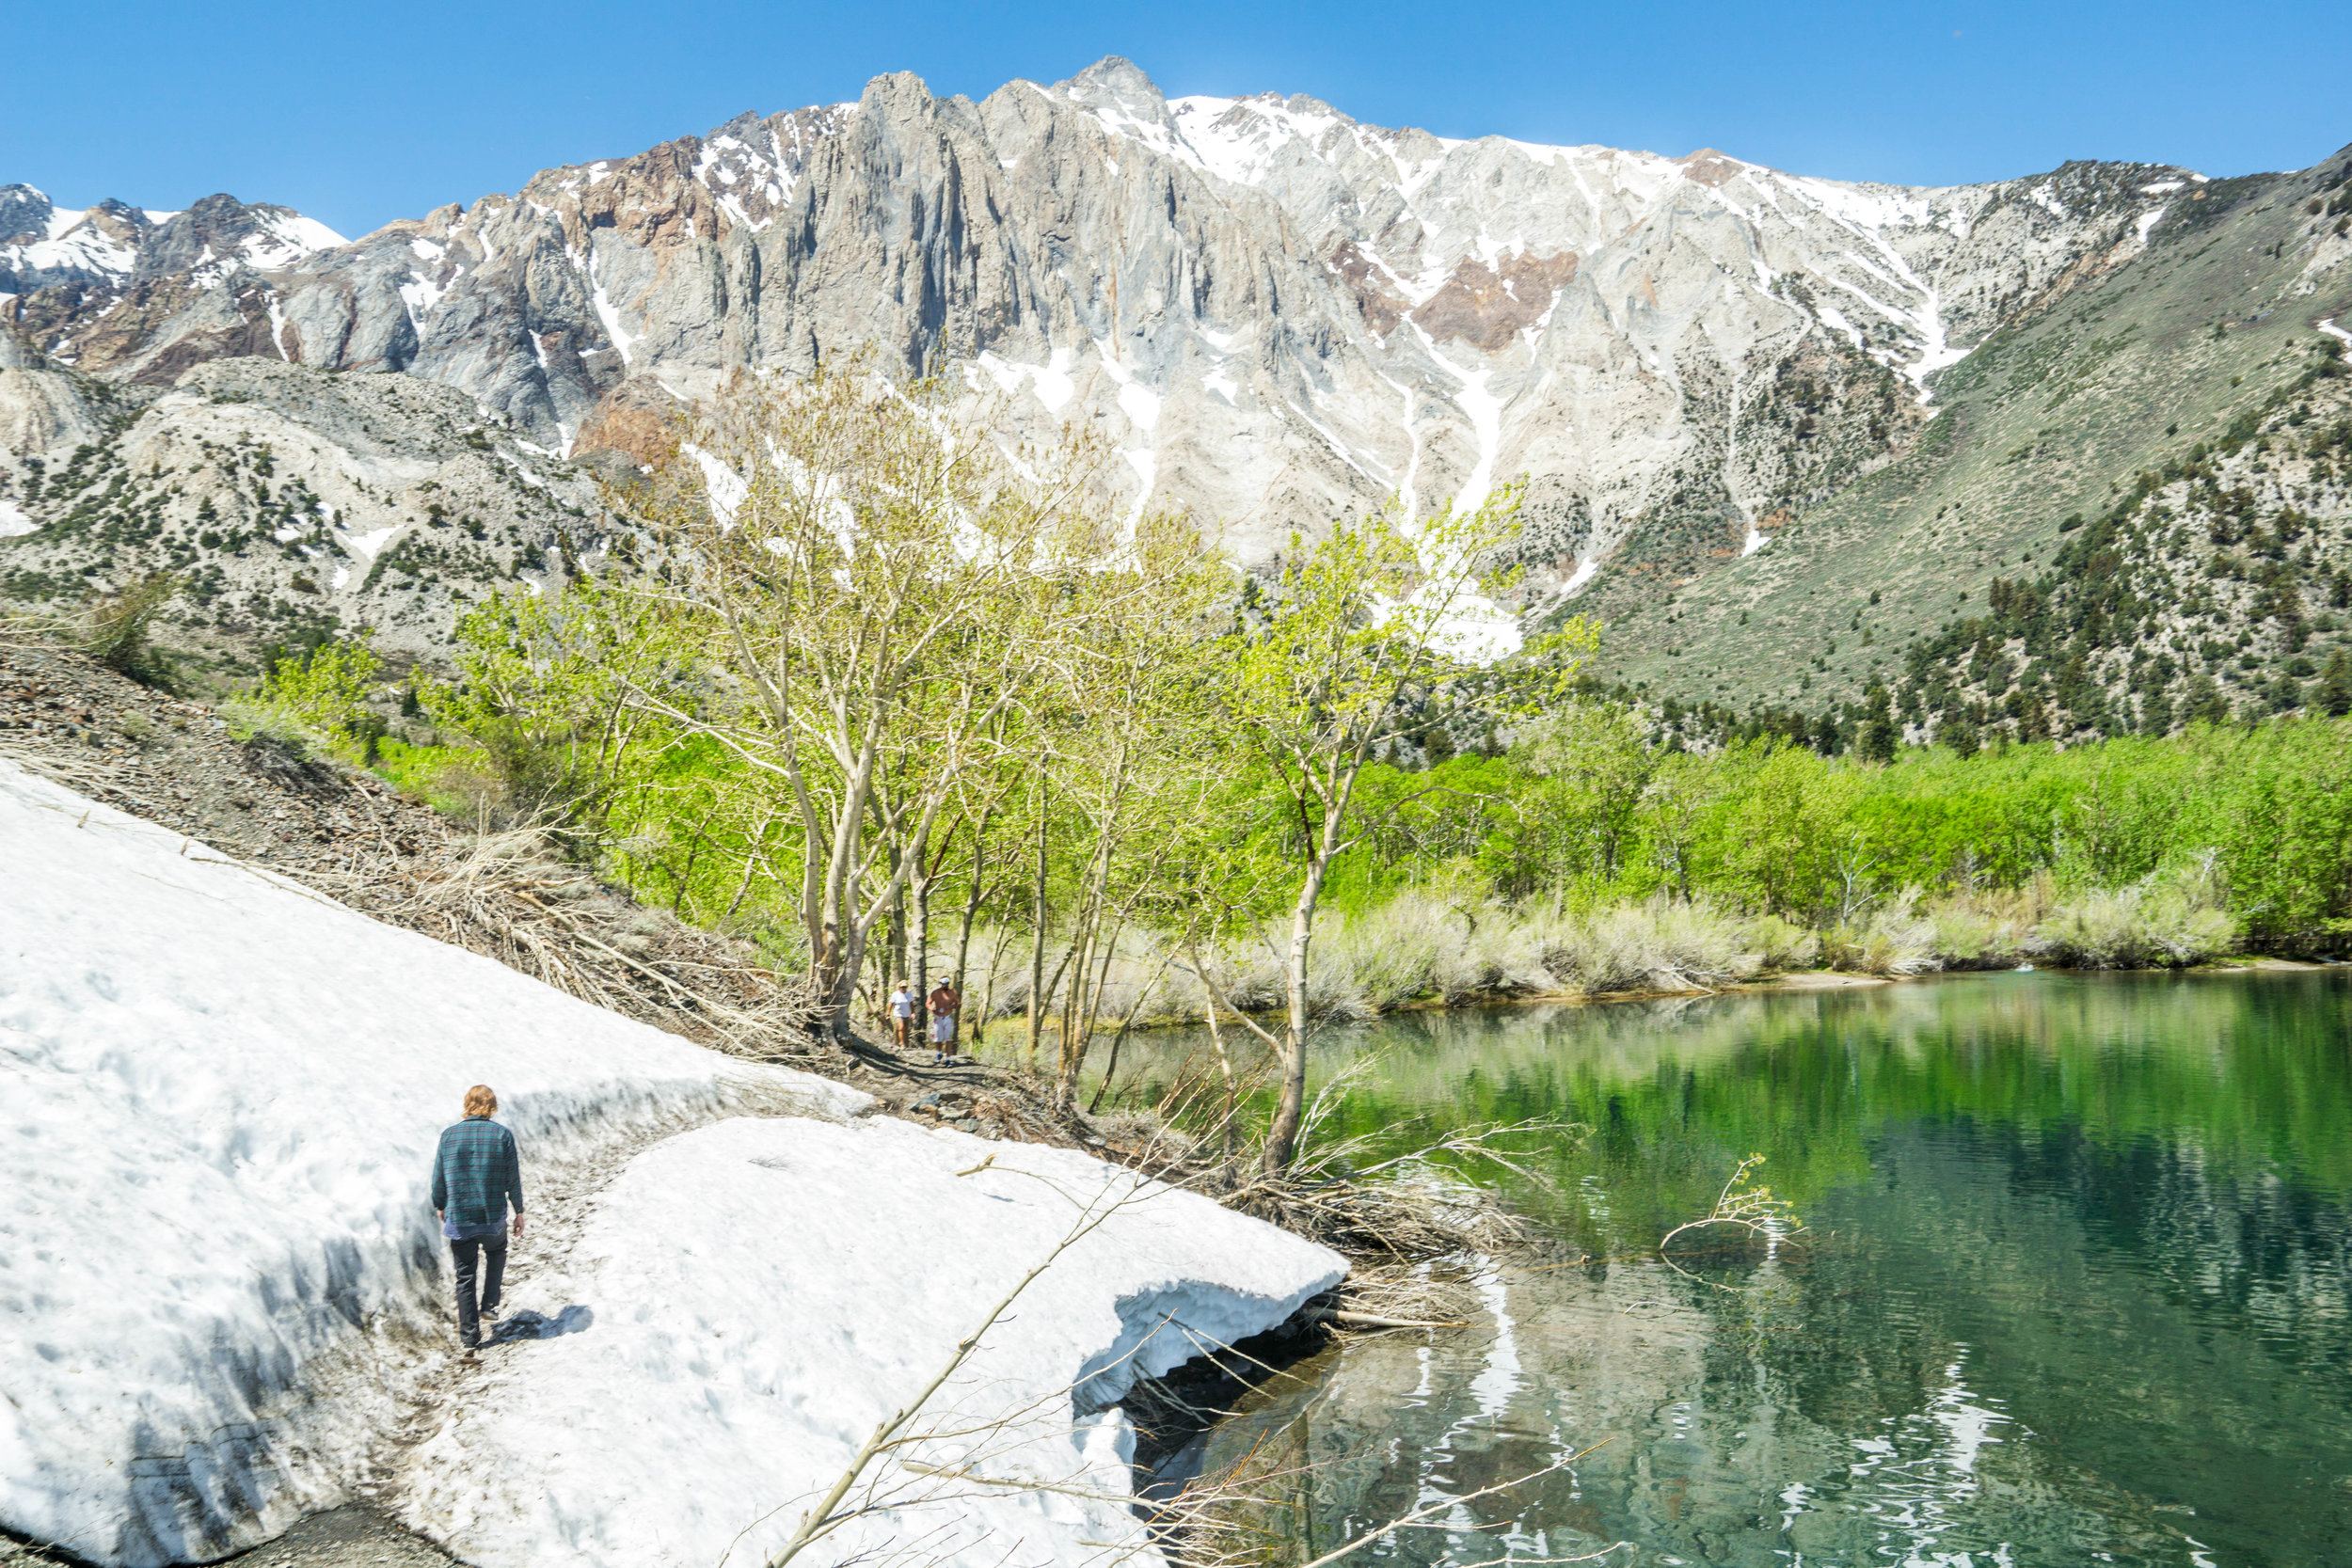 Even in late Spring & early Summer, there is frequently snow on the trail in the Sierra Nevadas. Walking without traction, we methodically crossed to assure we didn't slip & slide into the lake.